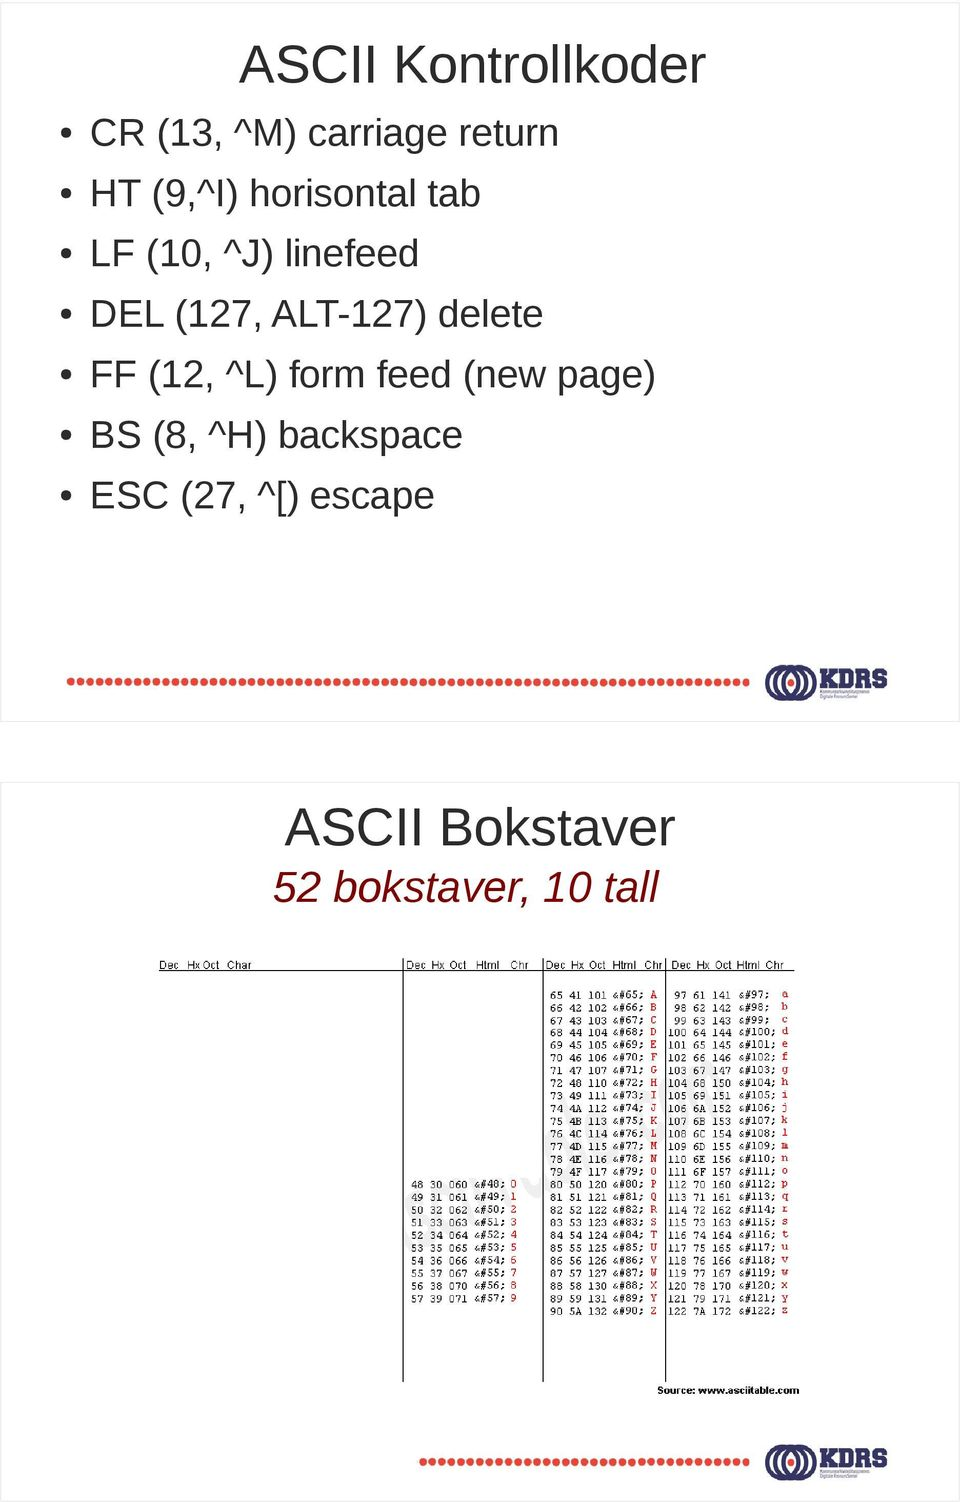 ALT-27) delete FF (2, ^L) form feed (new page) BS (8,